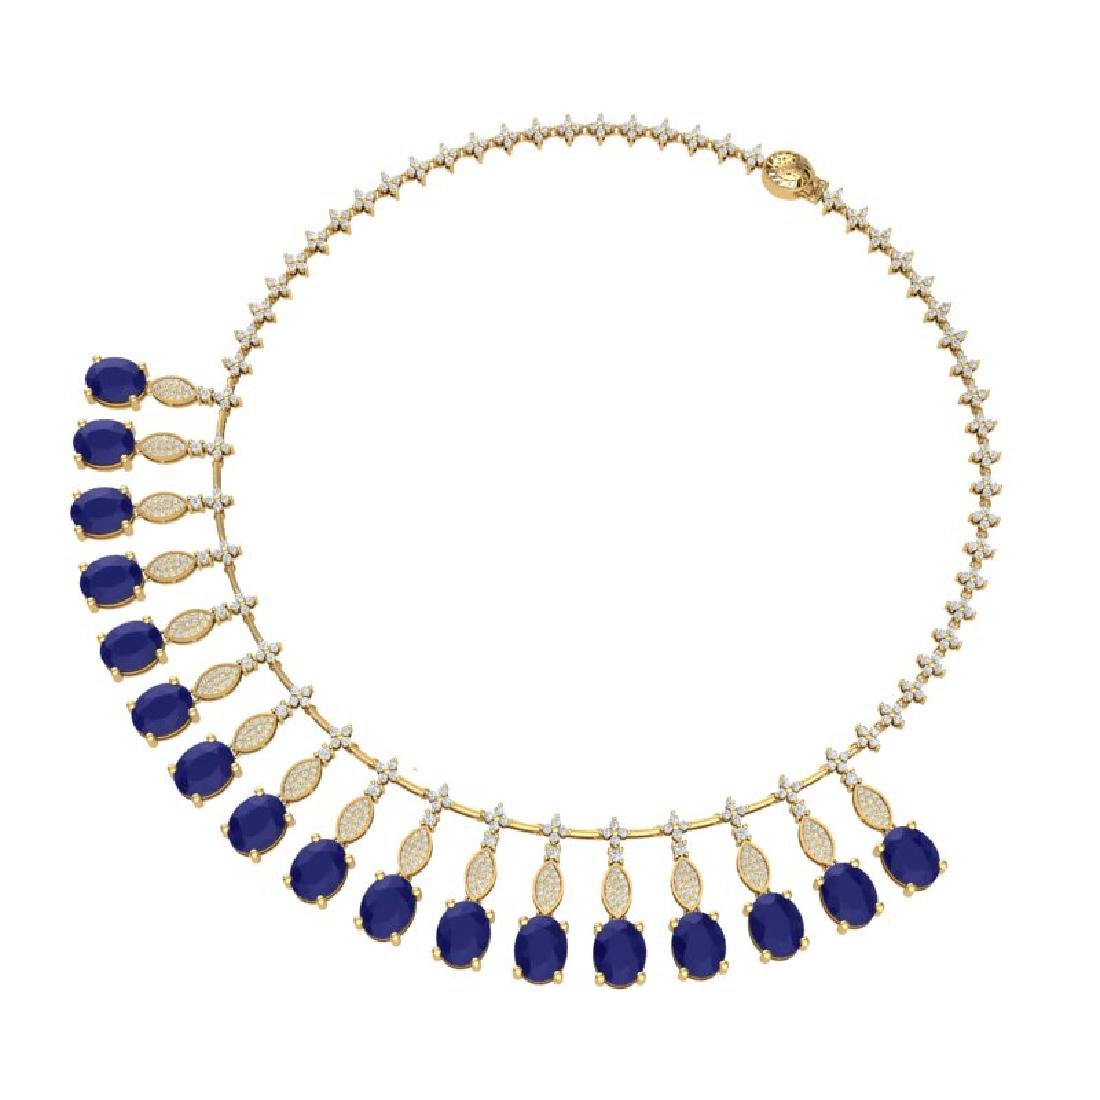 65.62 CTW Royalty Sapphire & VS Diamond Necklace 18K - 3